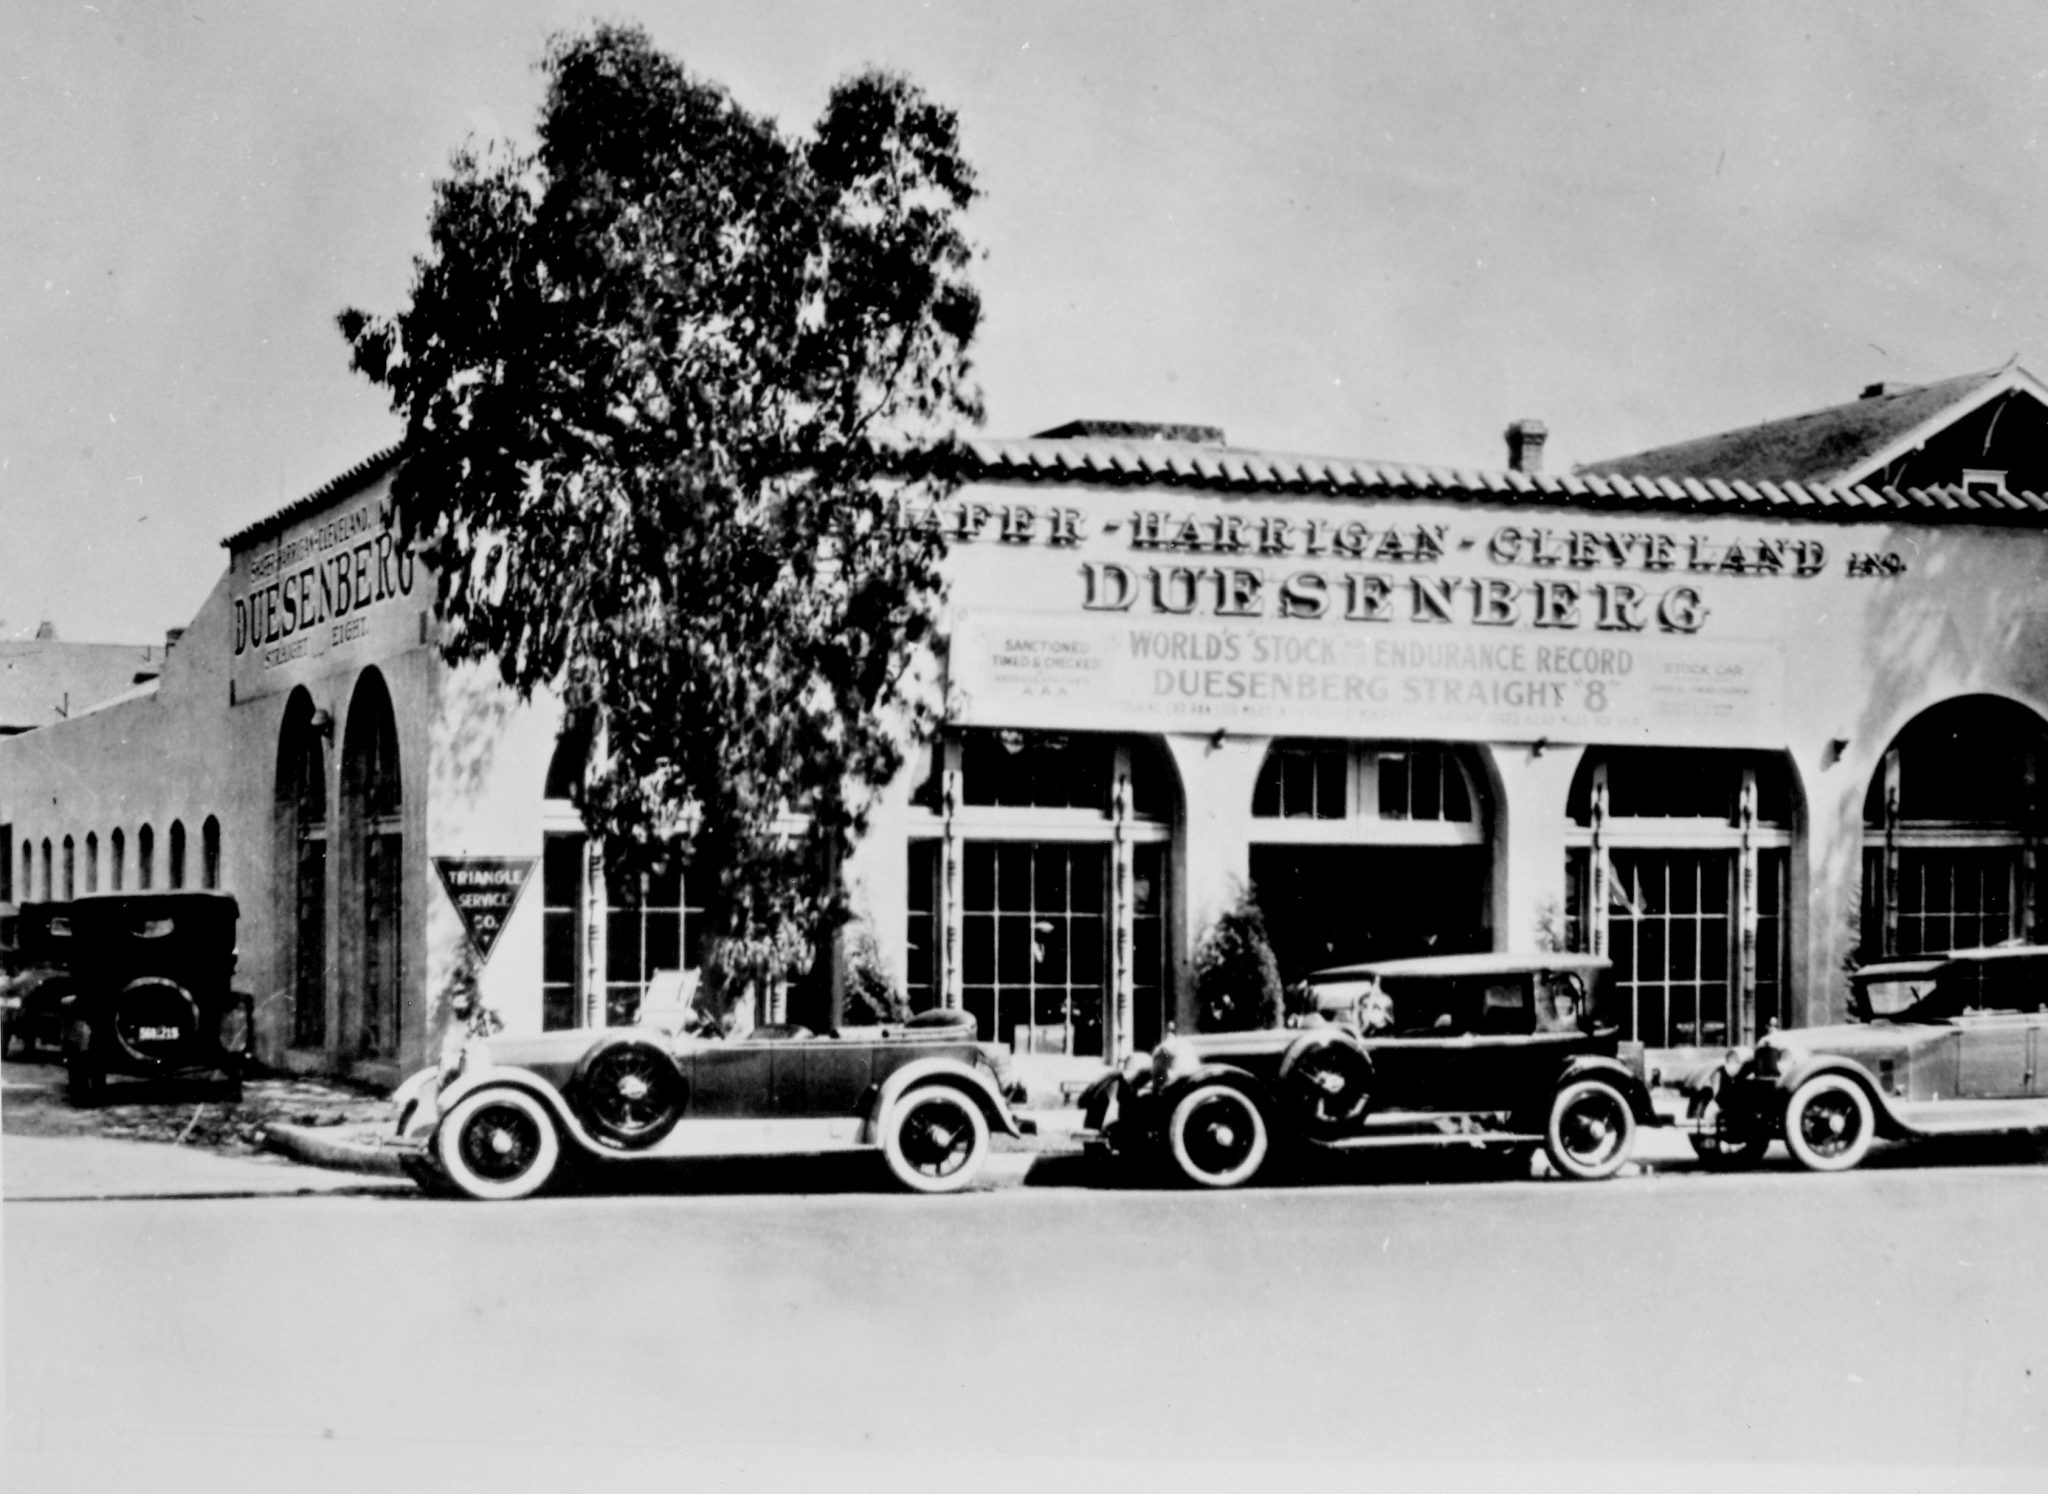 "Out West in sunny Southern California, Duesenberg sales were going strong, making Los Angeles one of the largest markets. Duesenberg chassis were also being fitted with custom bodies built in California or equipped with ""California tops"" such as the center model in this photo at the Shafer, Harrigan, & Cleveland, Inc. dealership in Los Angeles."